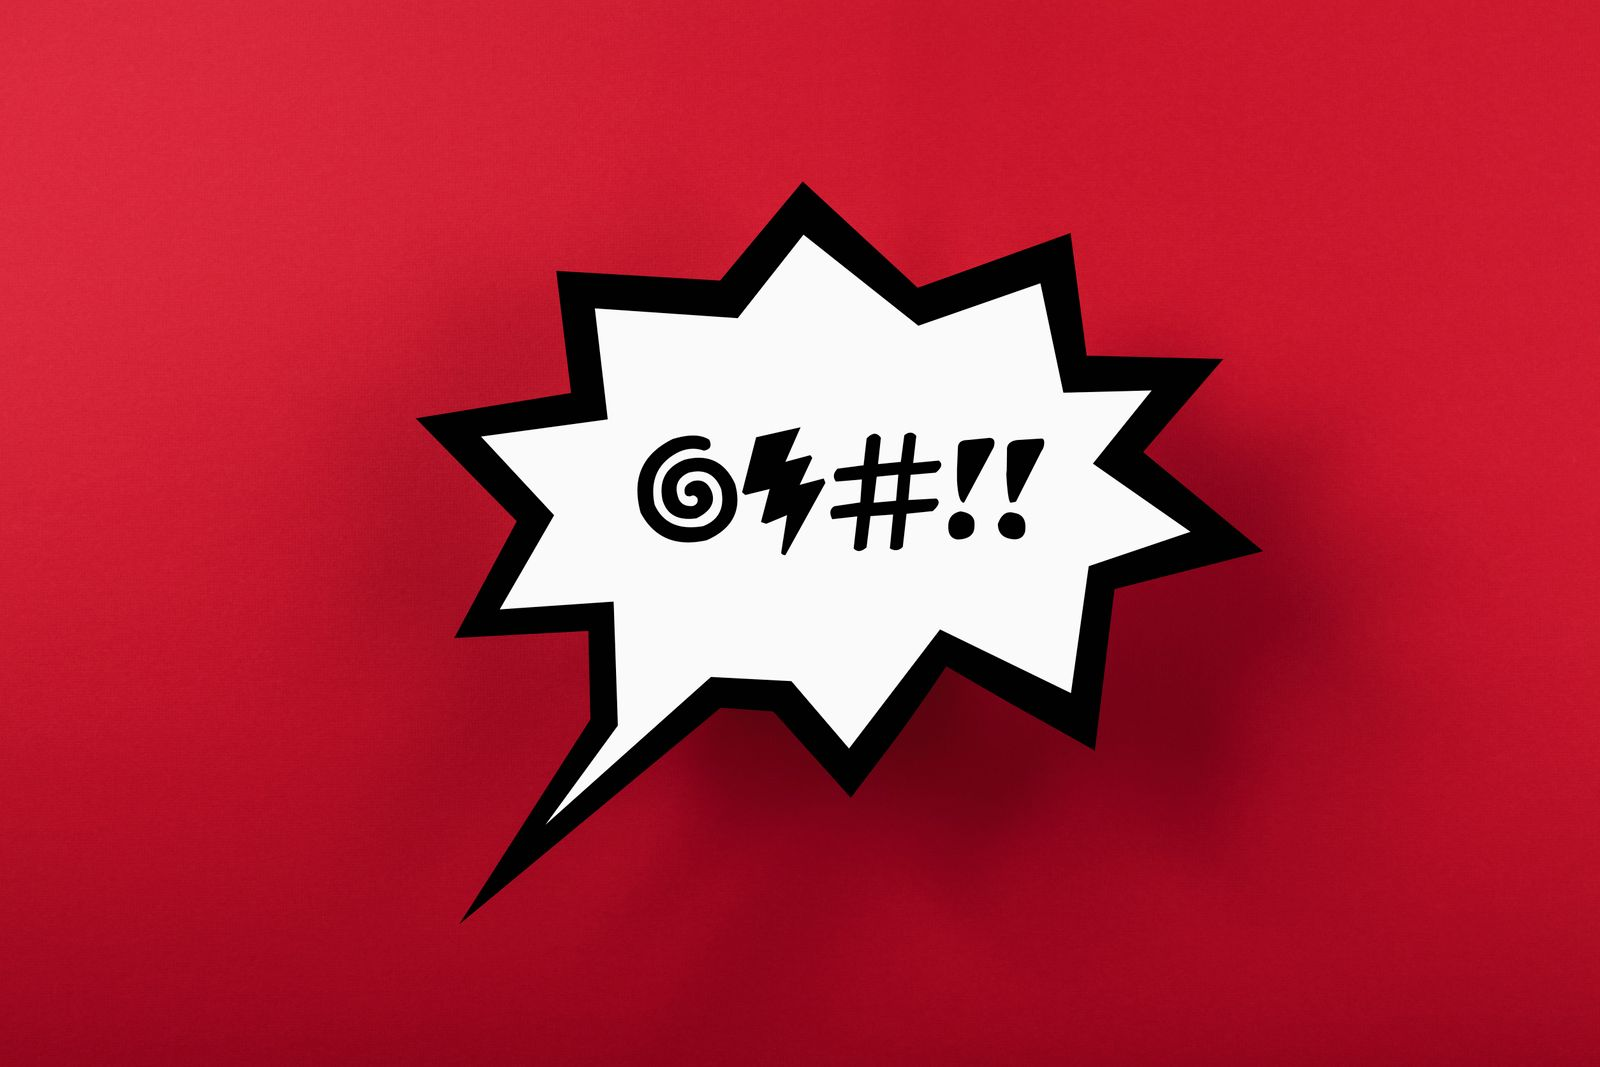 Curse speech bubble against red background